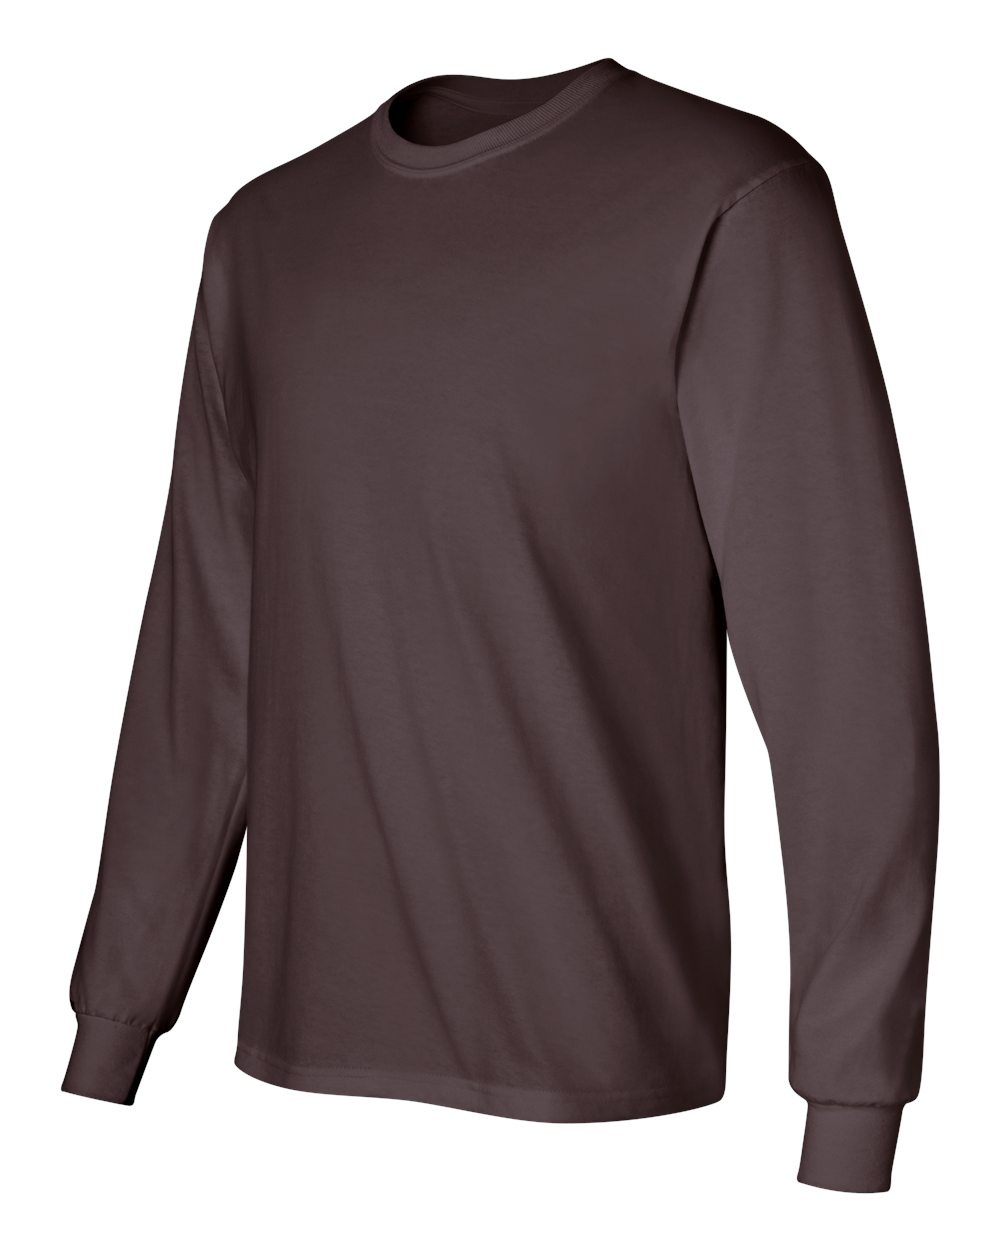 Gildan-Men-039-s-Ultra-Cotton-6-oz-Long-Sleeve-T-Shirt-G240-S-5XL thumbnail 23